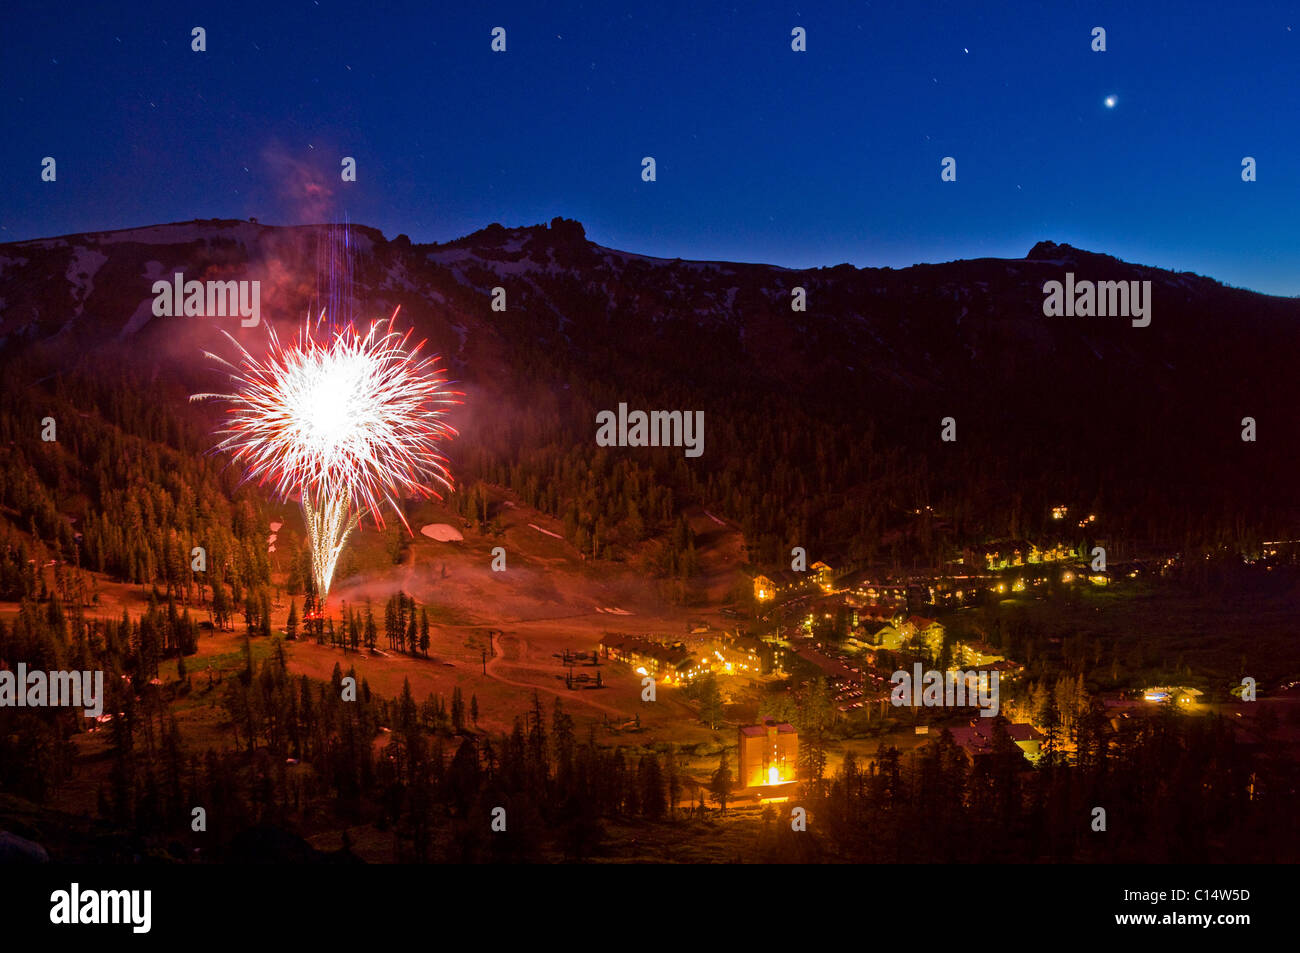 Summer fireworks illuminate the Kirkwood valley at Kirkwood Mountain Resort, California. - Stock Image